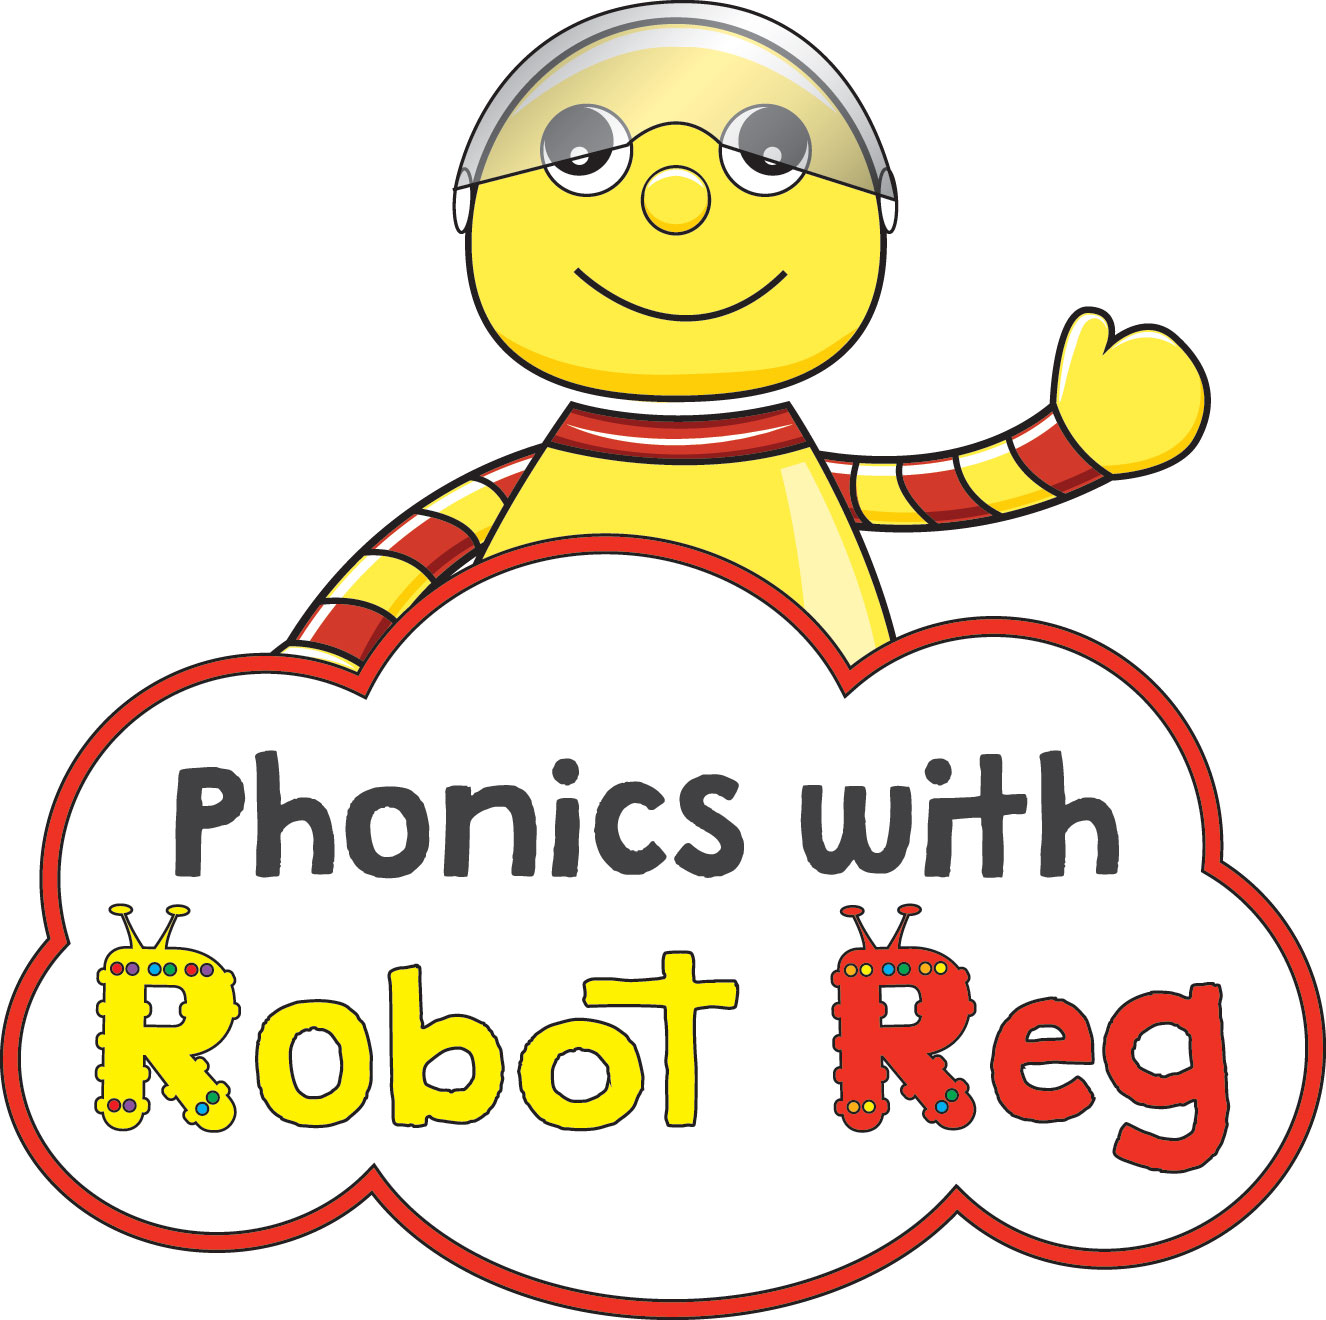 Phonics with Robot Reg Stroud and Cirencester 's logo